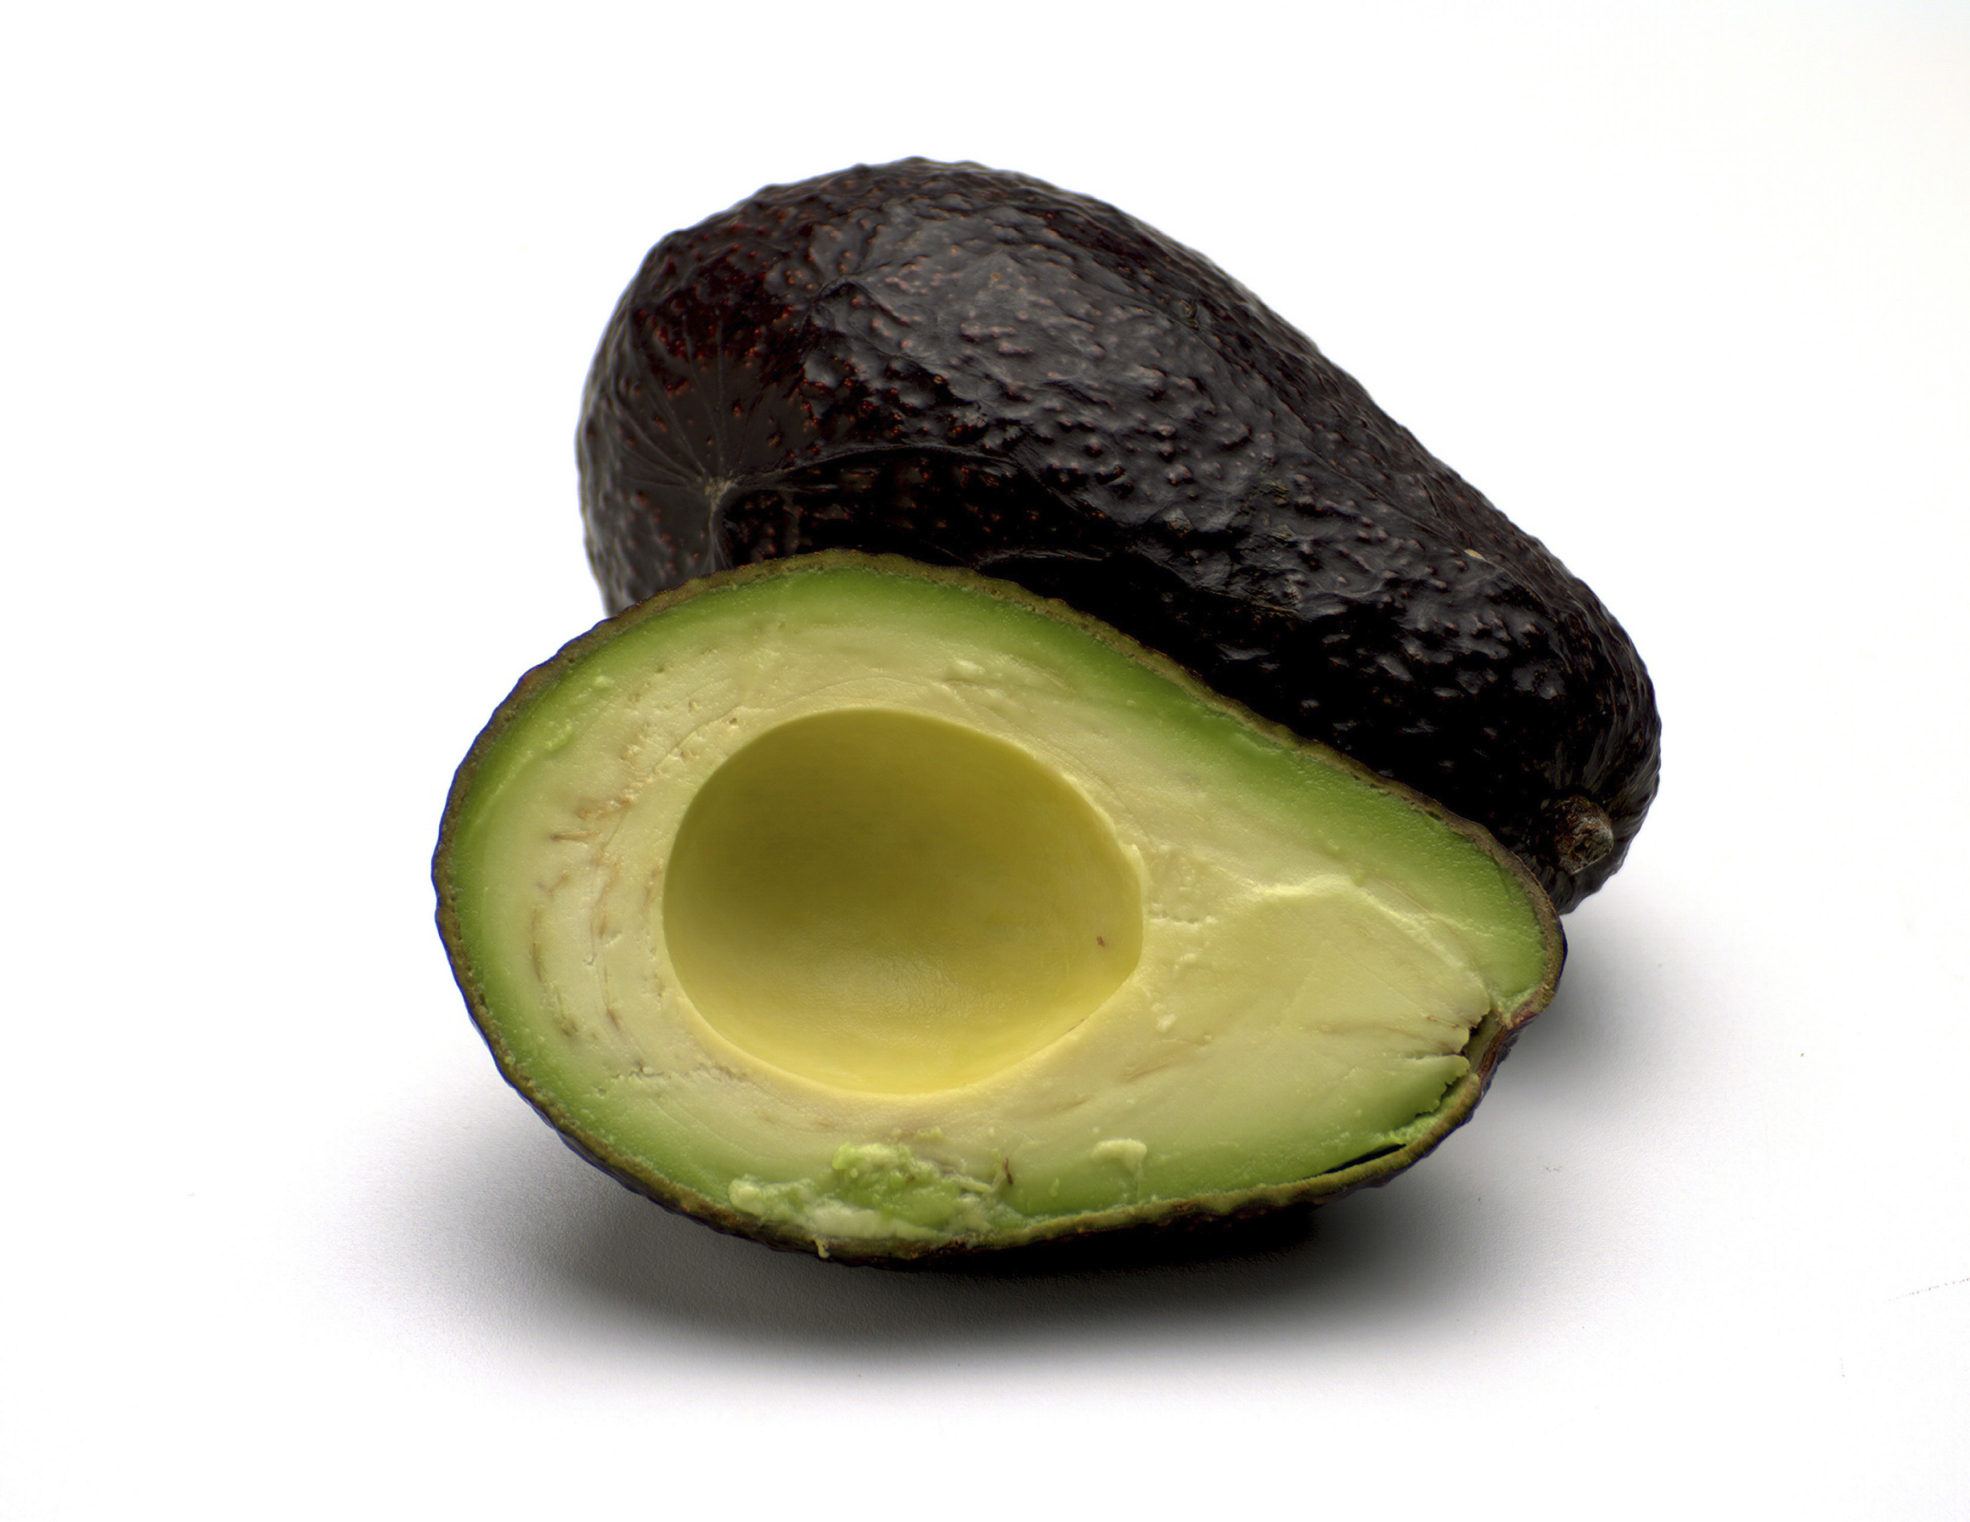 Avocados are richer in lysine and arginine than many fruits.